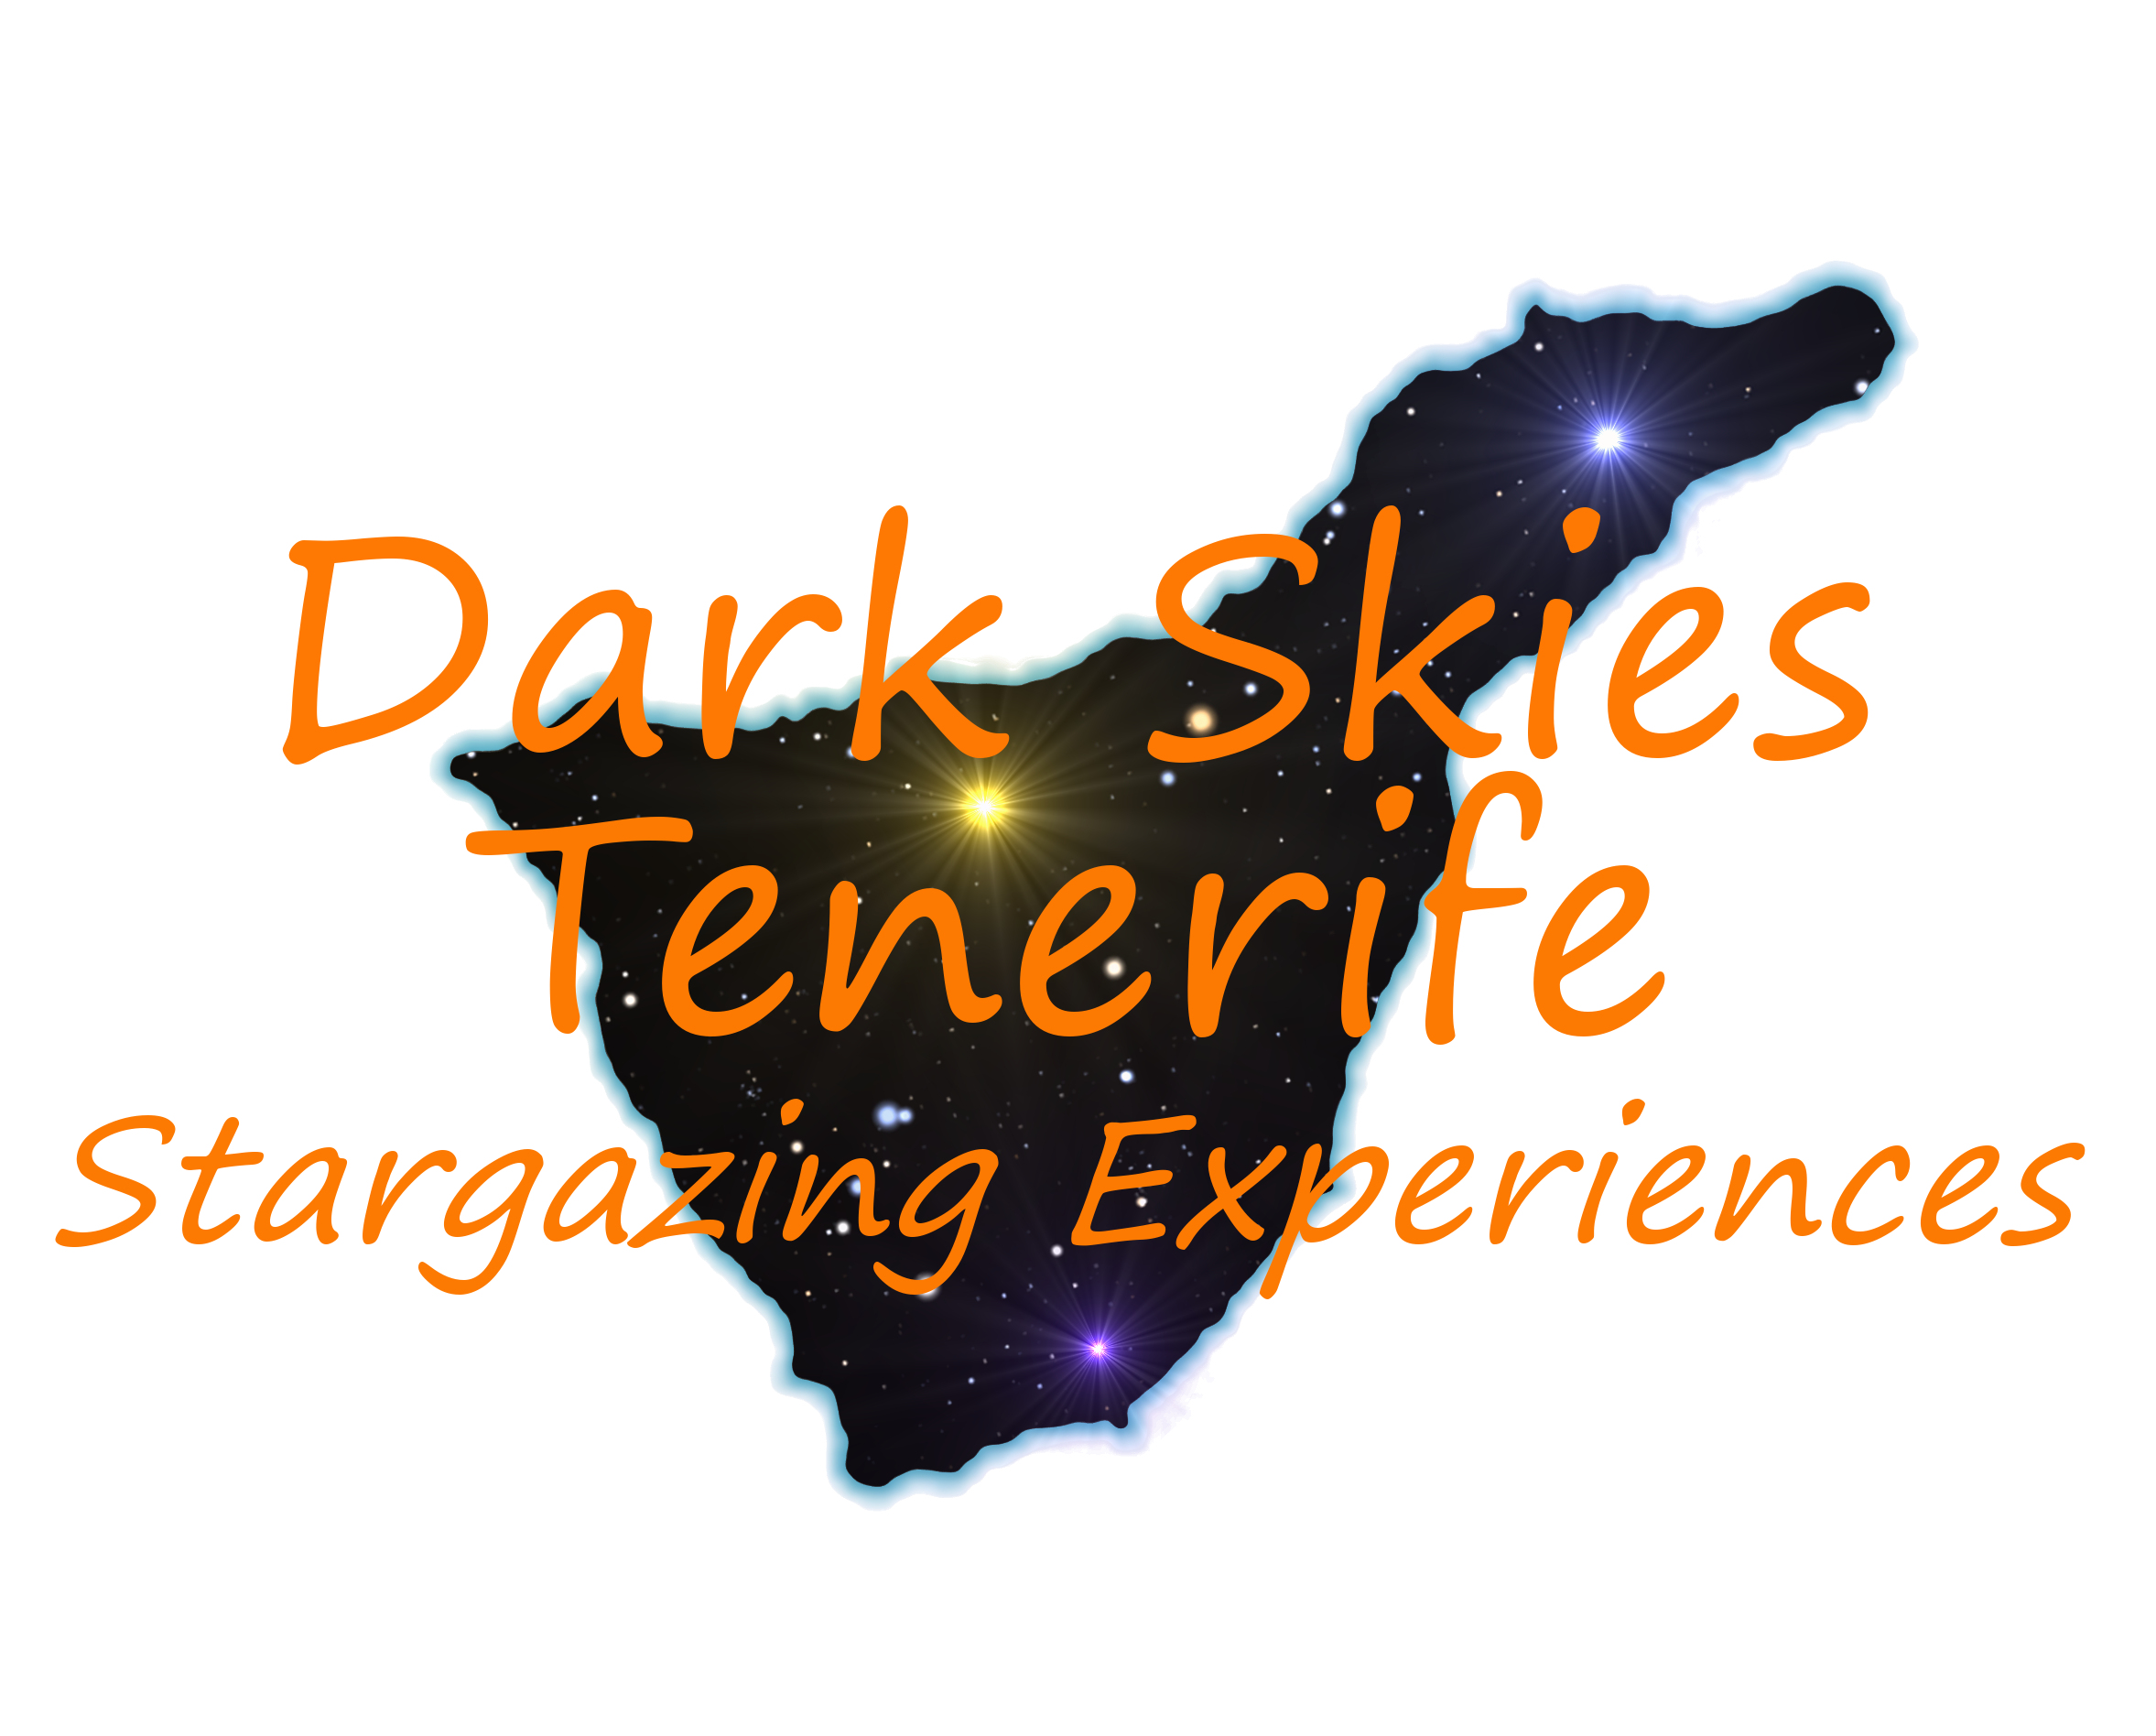 welcome to Dark Skies Tenerife, amazing experiences under amazing skies. Let us take you on a journey into the Universe! - Dark Skies Tenerife offers unique, private, guided stargazing experiences for all lovers of the cosmos.Click here to read more…